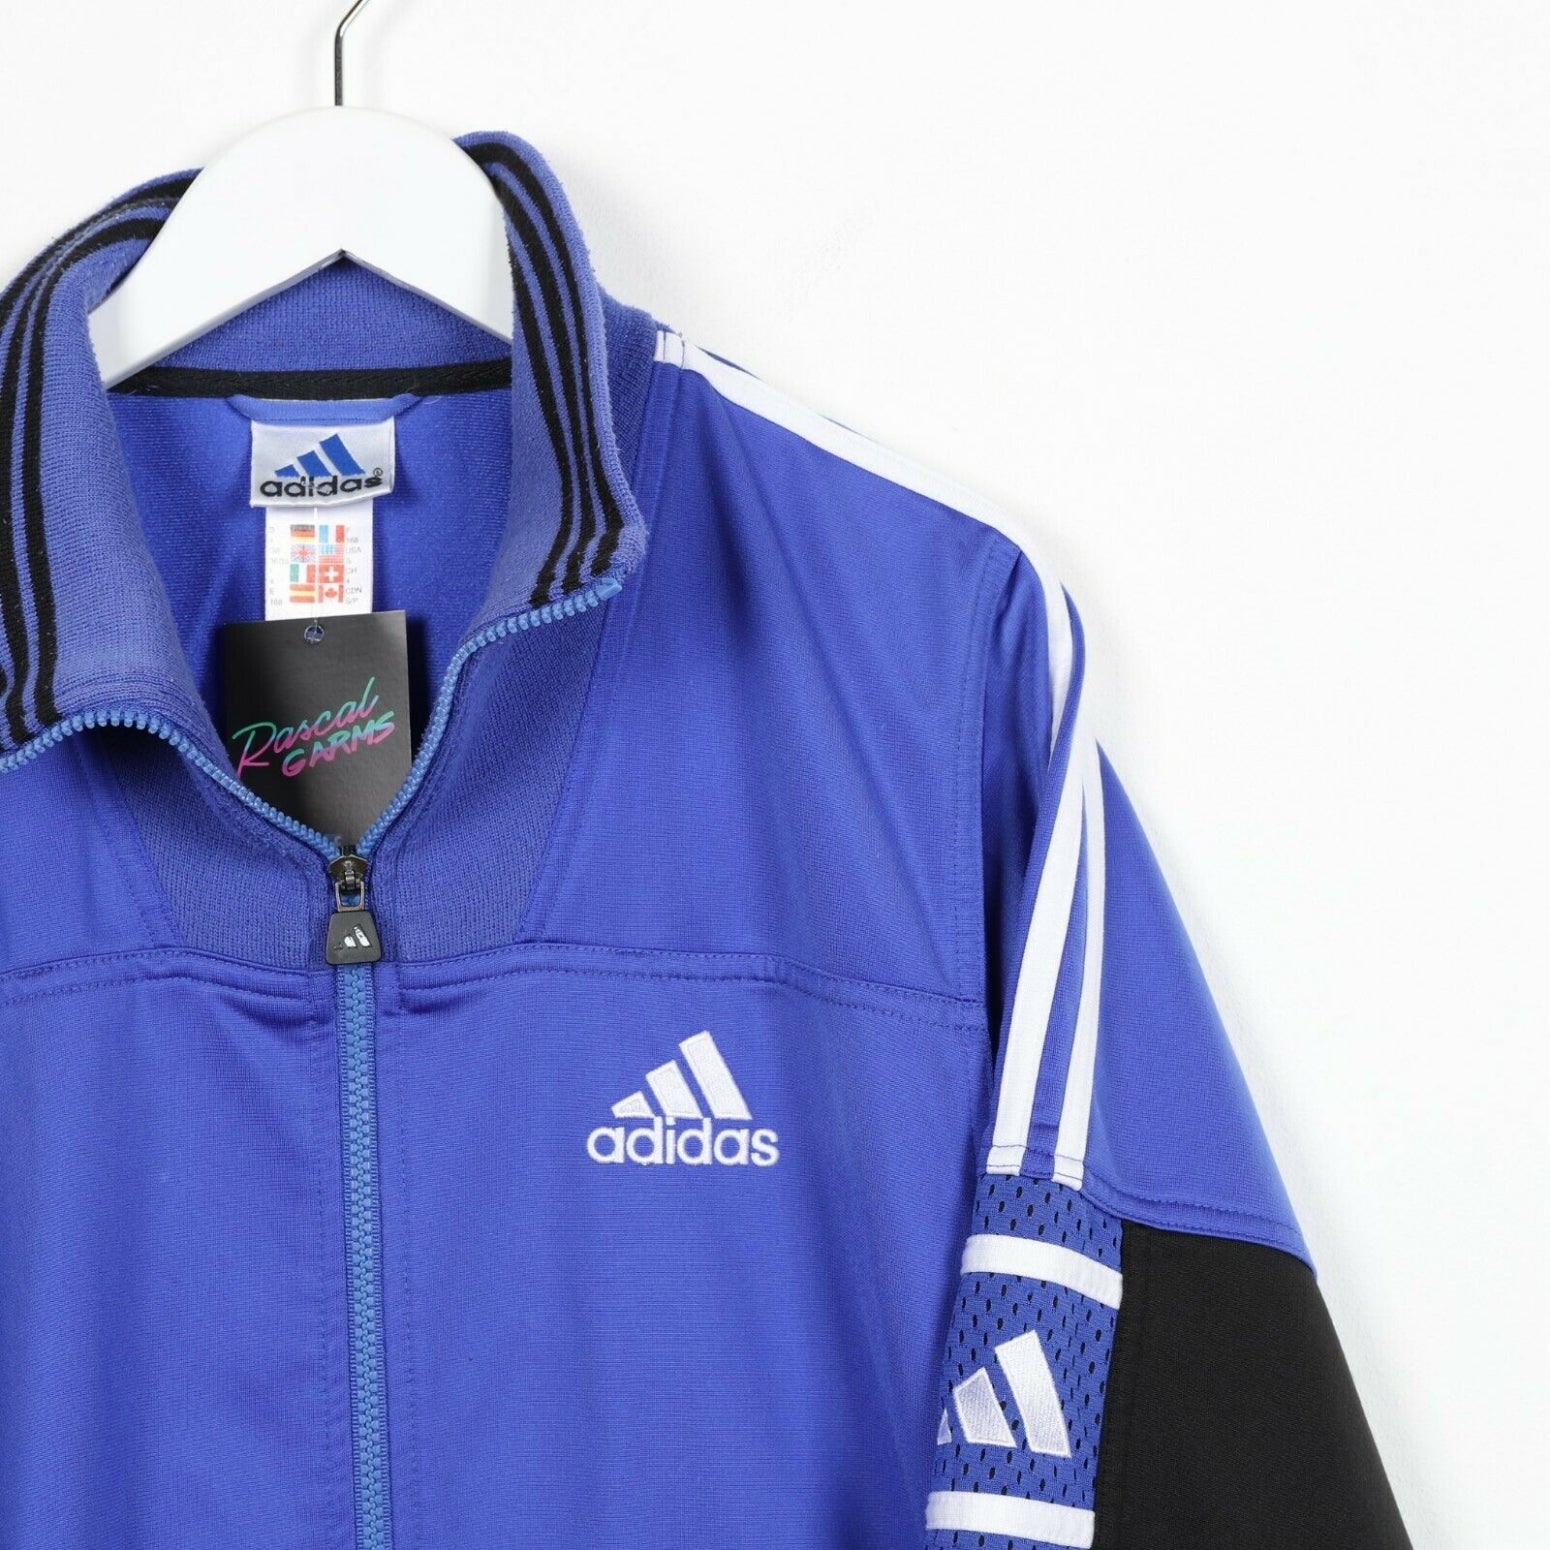 Vintage 90s ADIDAS Small Logo Track Top Jacket Purple Medium M